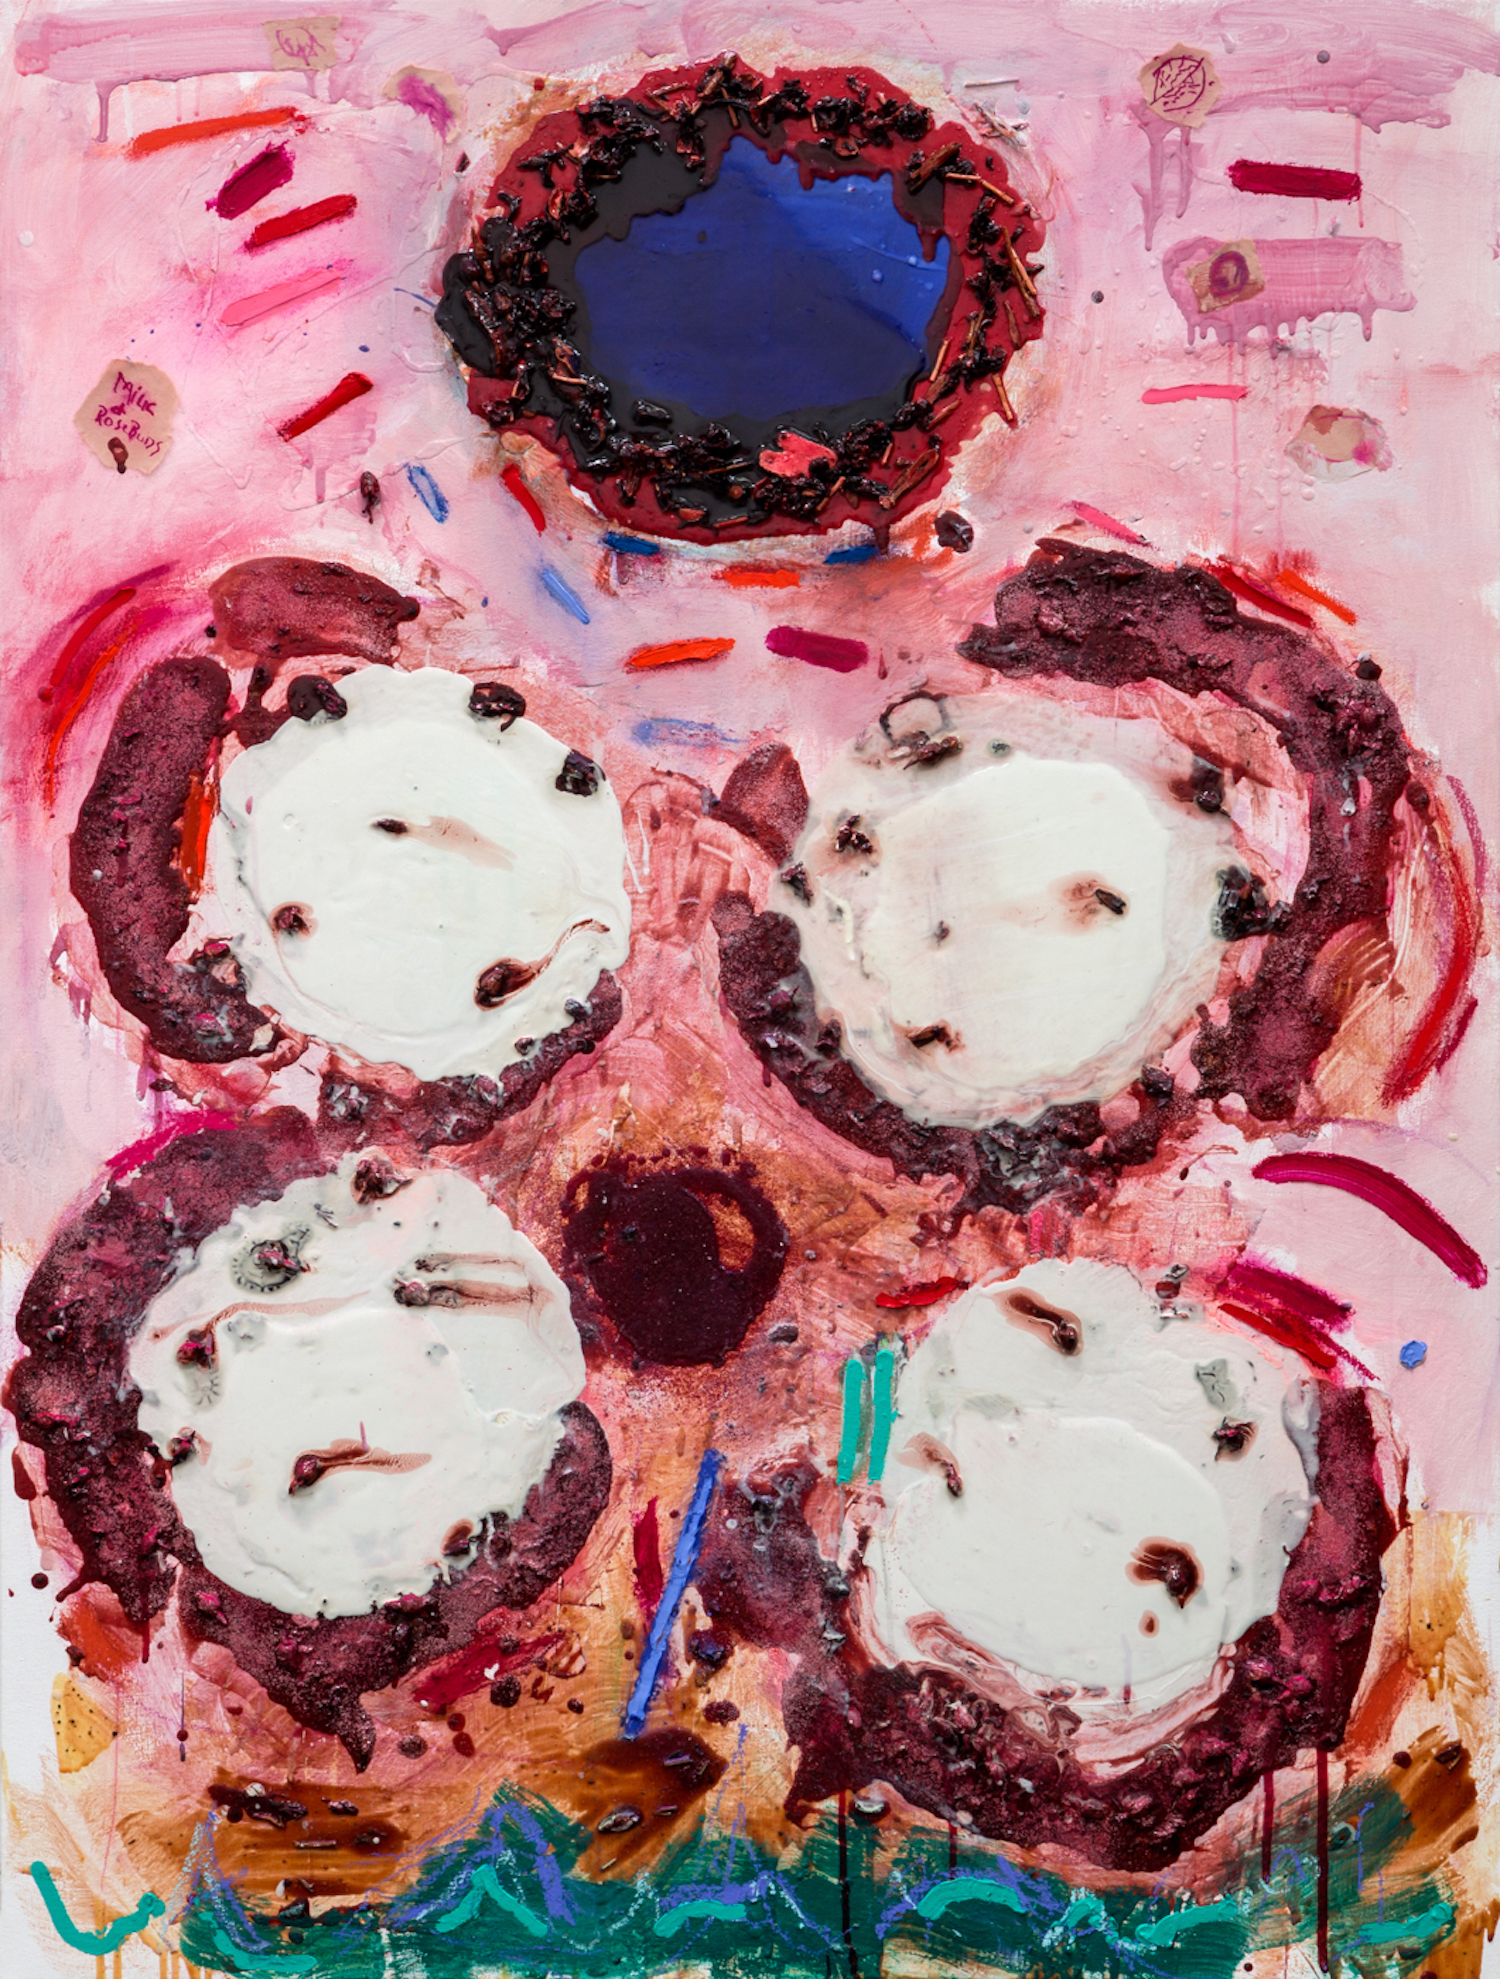 Joan Snyder, Milk + Rosebuds, 2018, Courtesy the artist and BlainSouthern